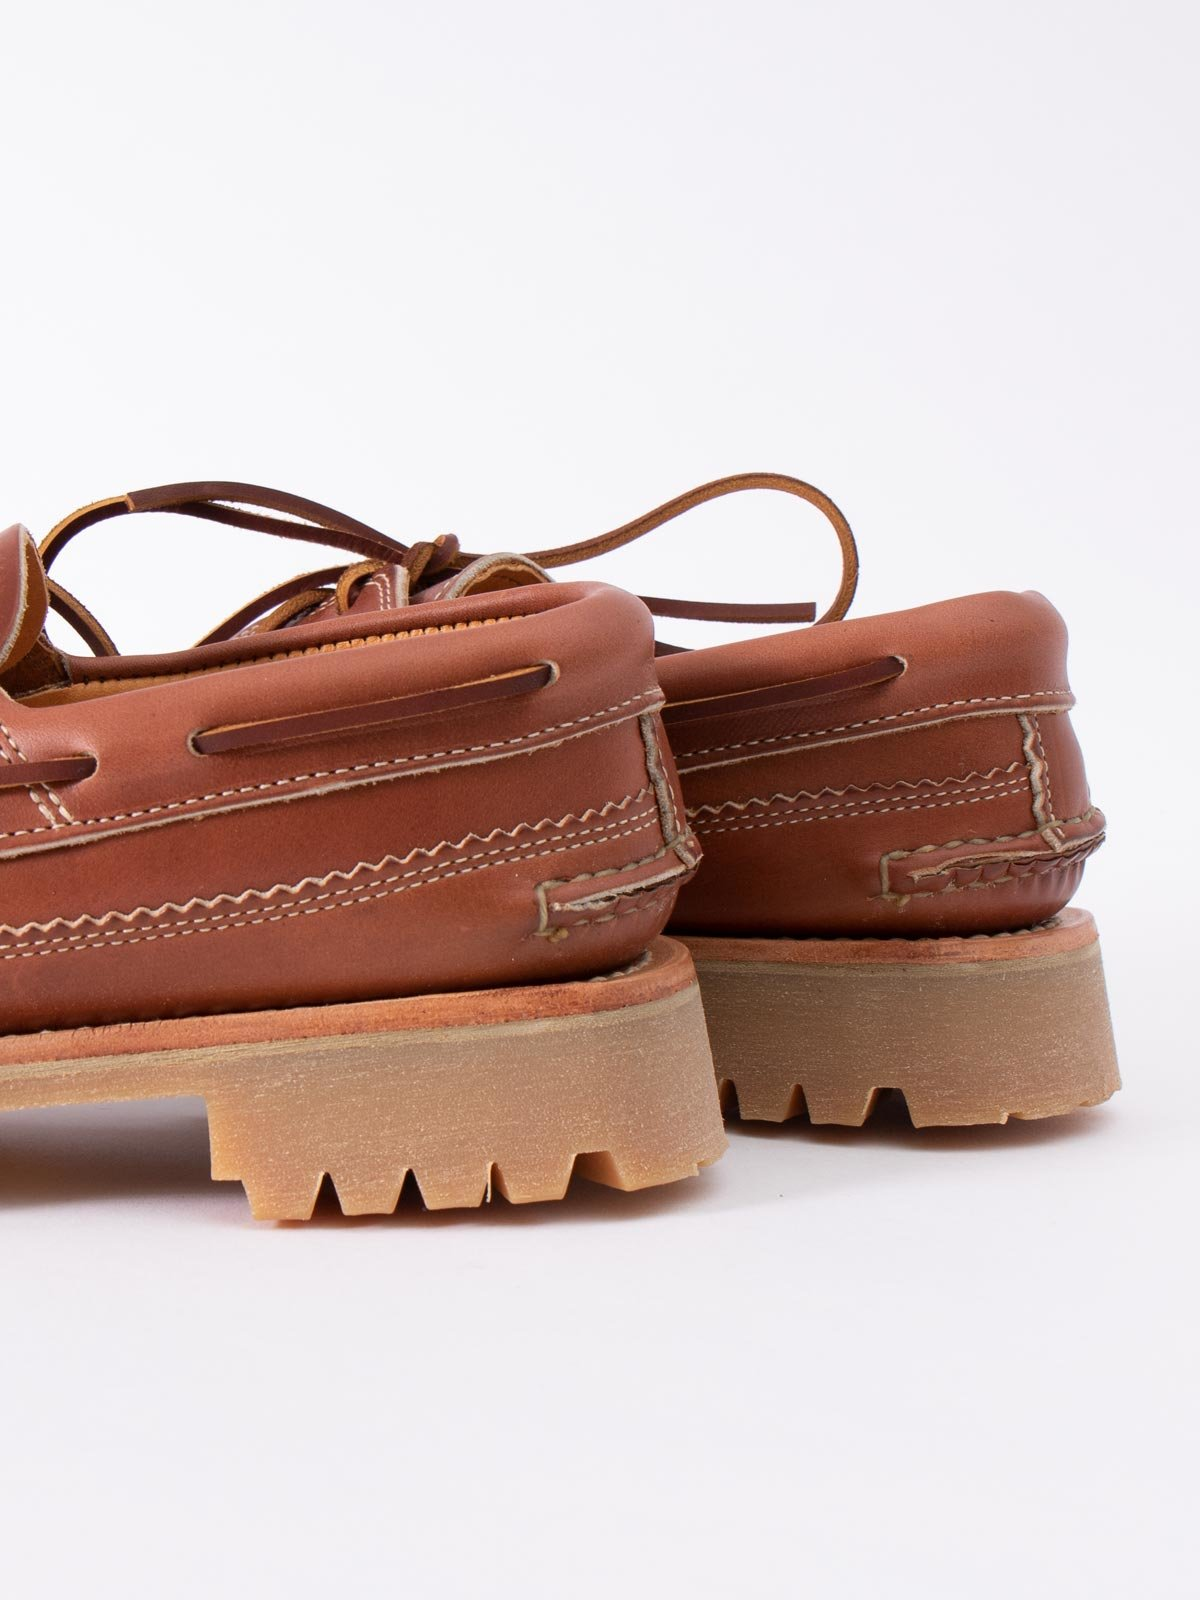 C WHISKEY DB BOAT SHOE W/ LUG SOLE EXCLUSIVE - Image 4